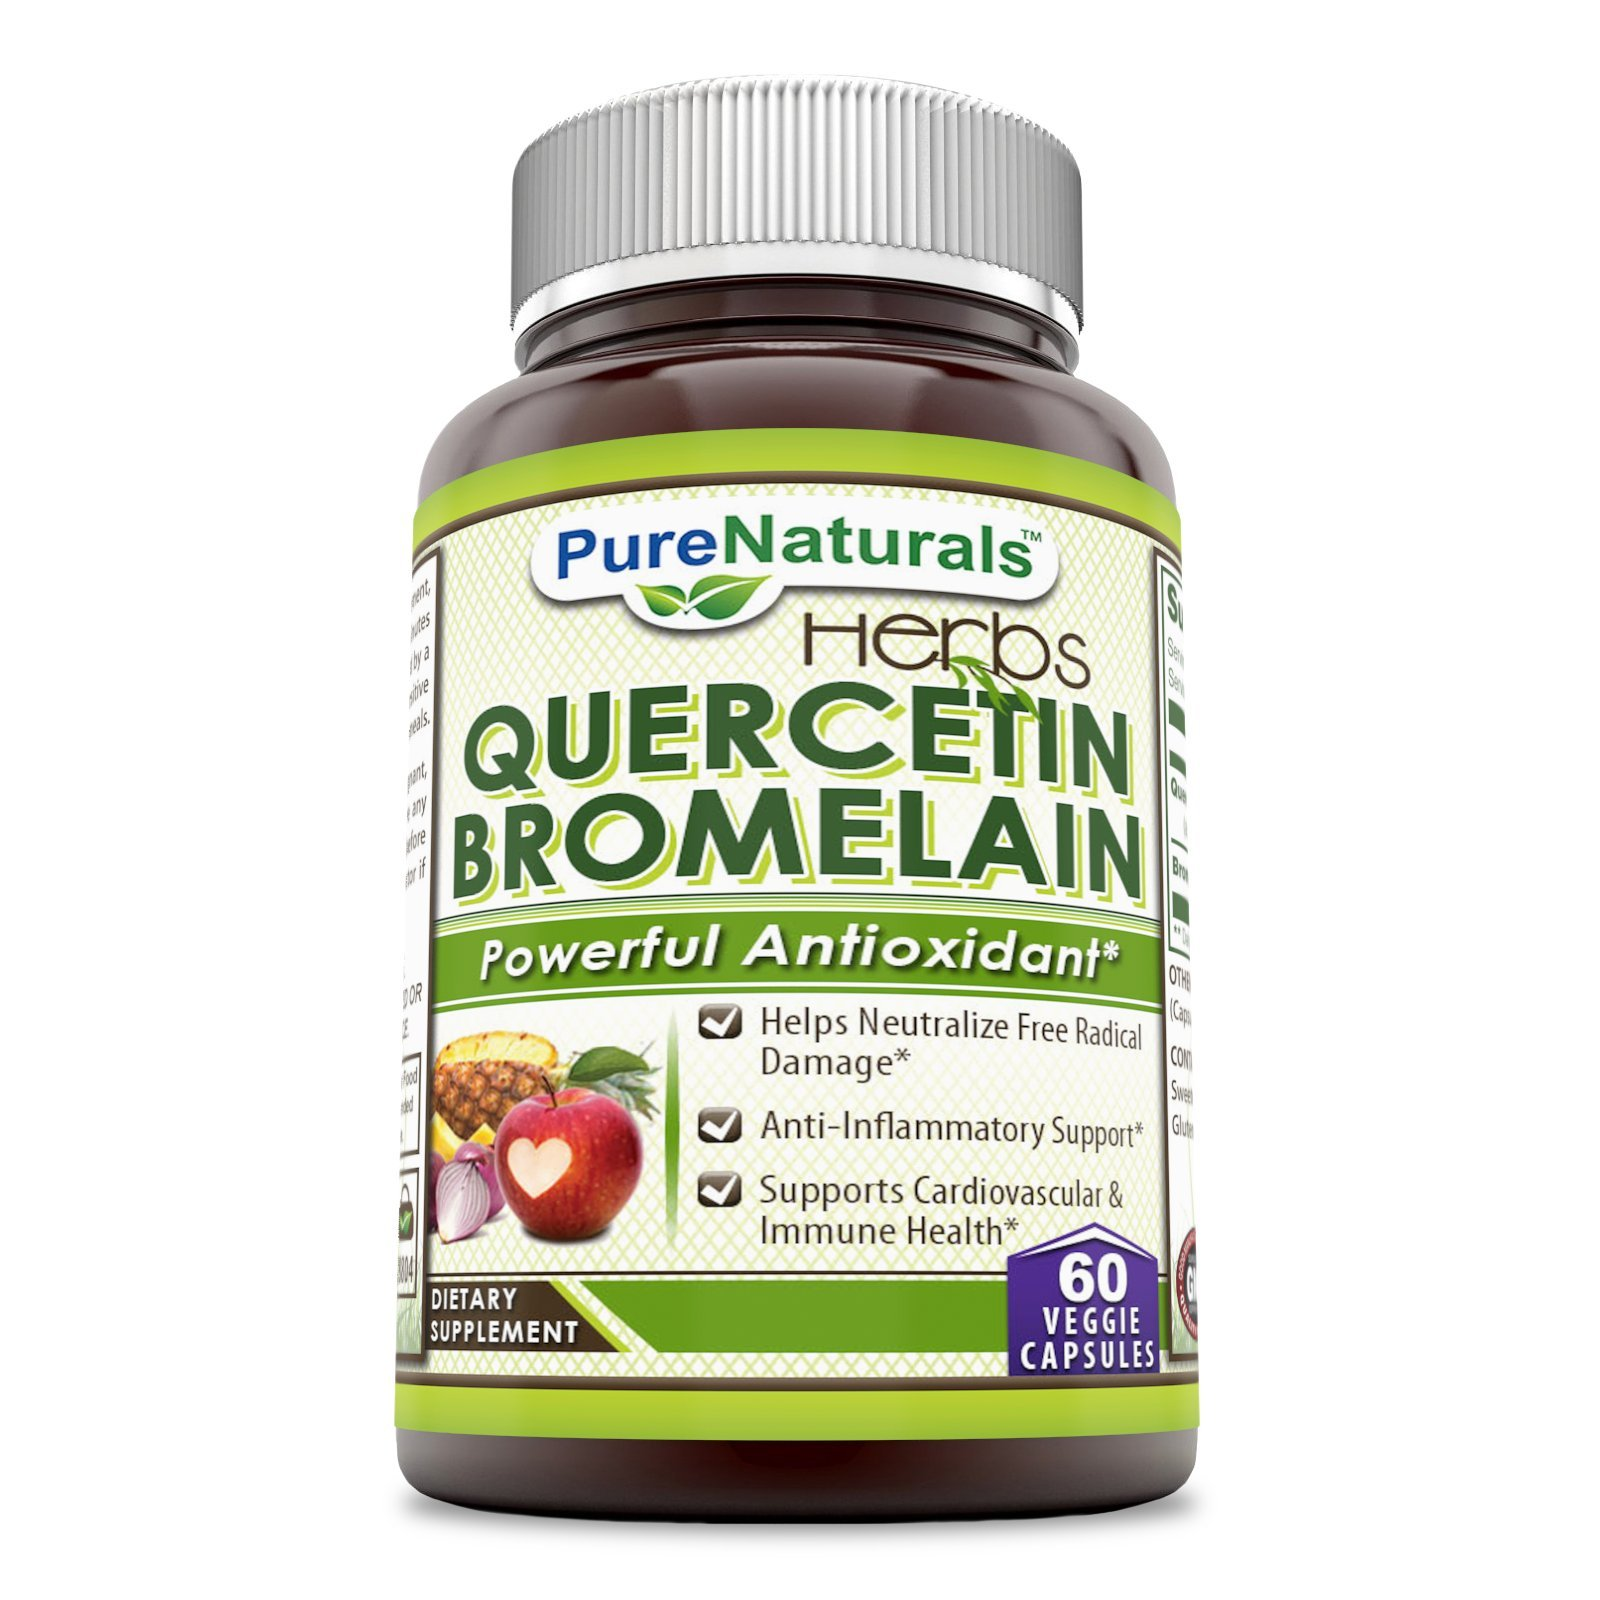 Pure Naturals Quercetin with Bromelain, Veggie Capsules -Reduces Sign of Aging* -Supports Healthy Immune Response* (60 Count)